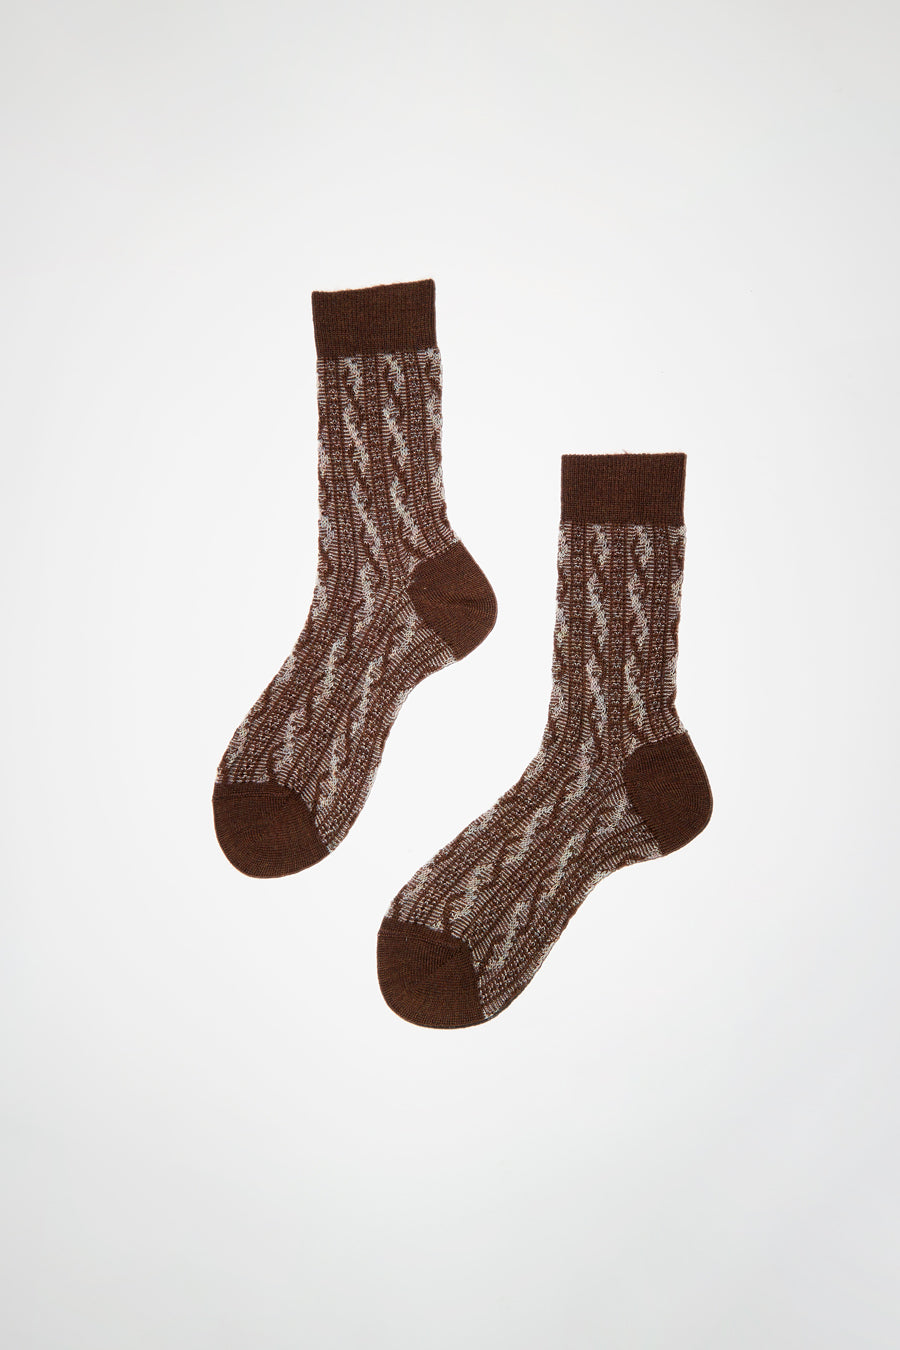 Maria La Rosa Two Tone Cable Patterned Sock in Camel